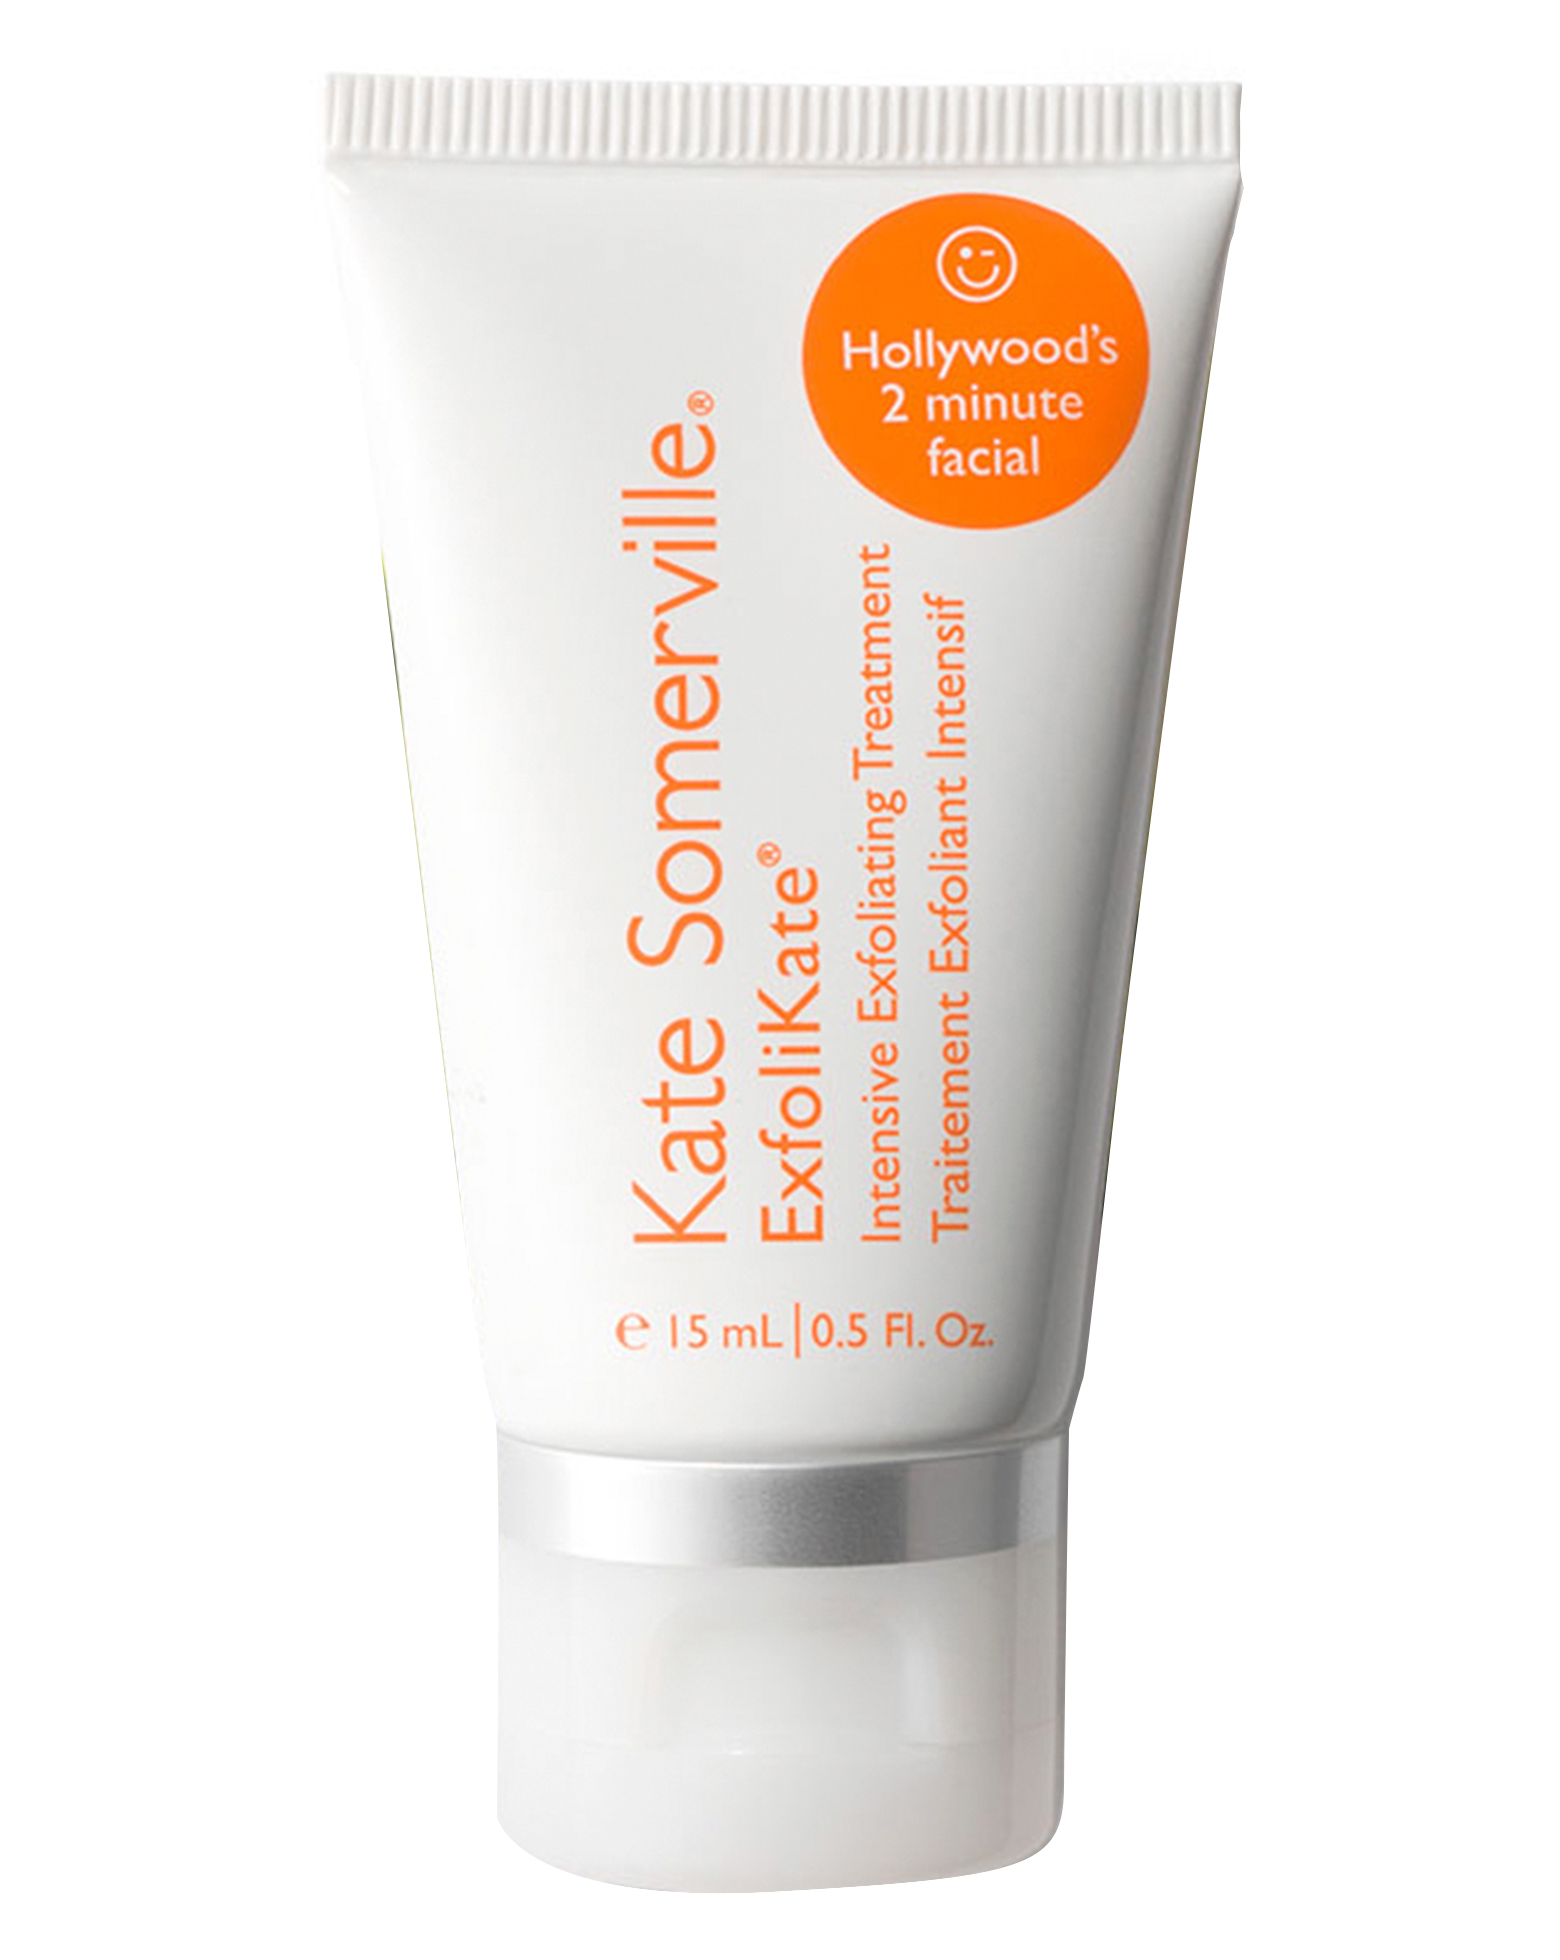 Kate Somerville ExfoliKate Intensive Pore Exfoliating Treatment